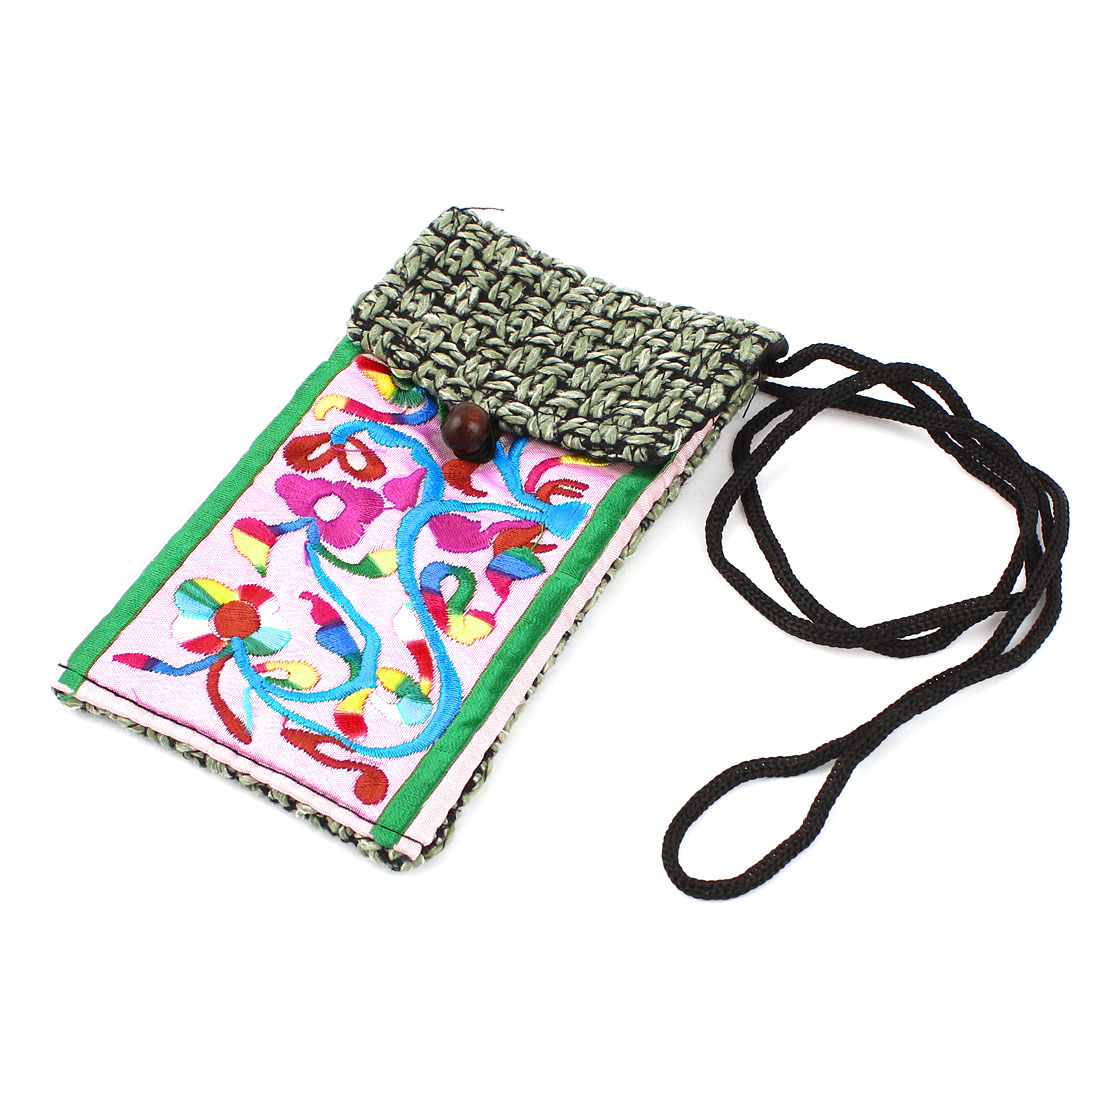 Light Green Pink Embroidery Floral Pattern Hand Strap Knitting Smartphone Pouch Bag